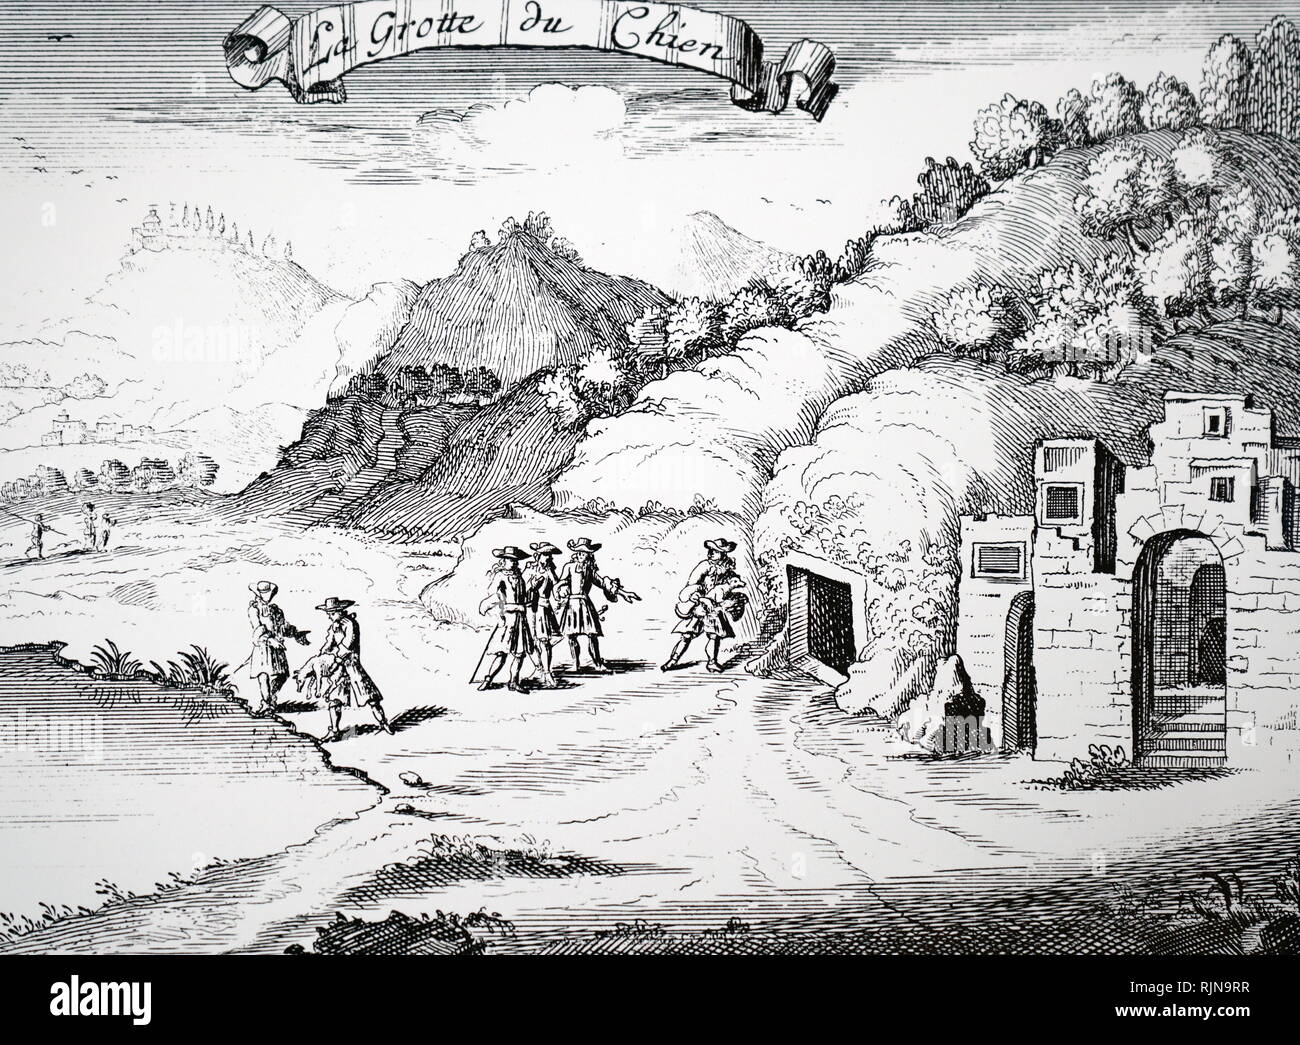 An engraving depicting the guide of the Grotto de Cane, demonstrating the dangers of suffocating in the grotto. The guide would hold his dog in the fumes until it was almost unconscious. He would then throw it into the lake and revive it. Dated 18th century - Stock Image